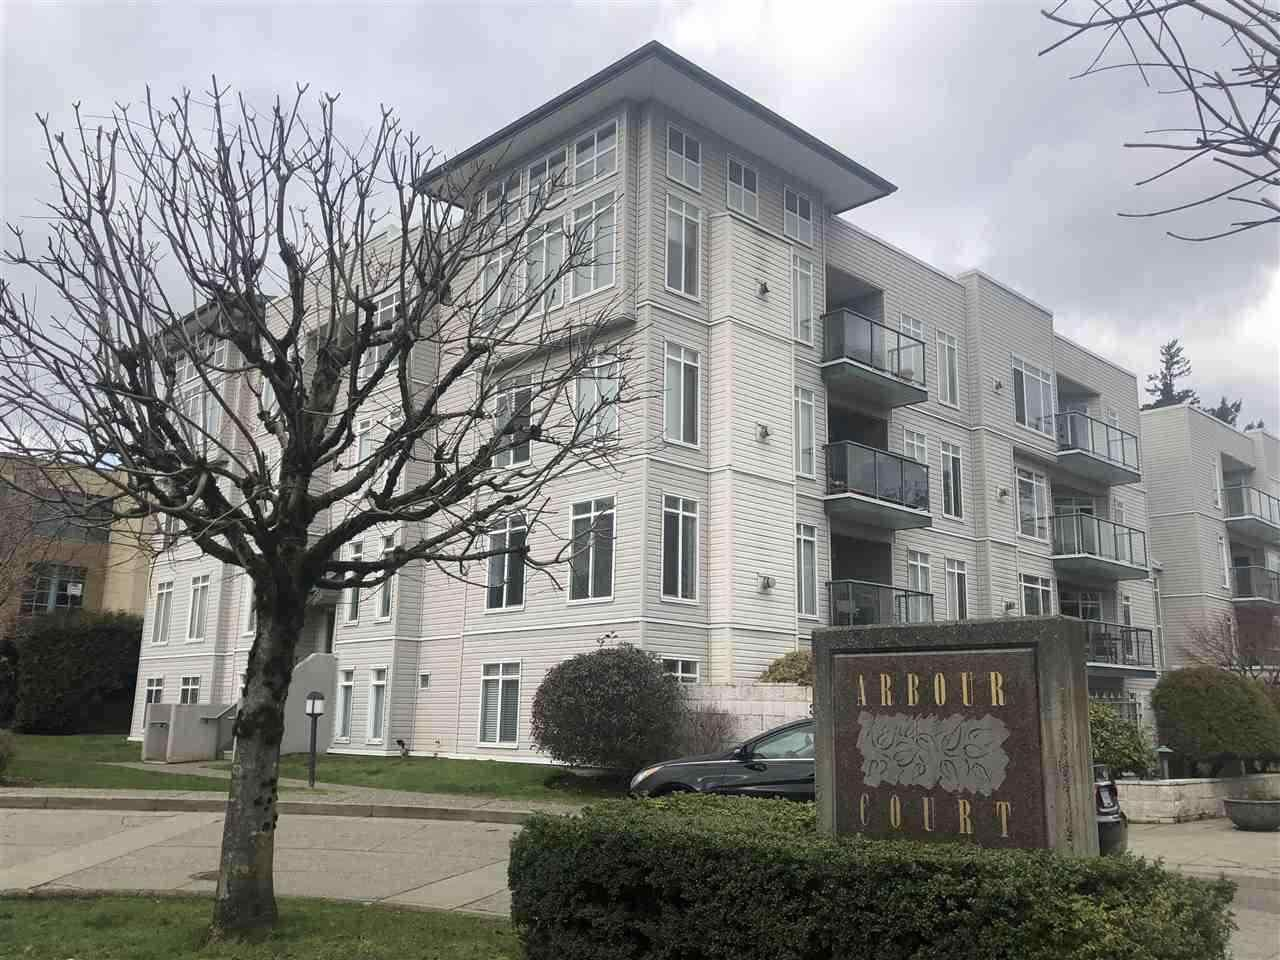 """Main Photo: 407 32075 GEROGE FERGUSON Way in Abbotsford: Abbotsford West Condo for sale in """"Arbour Court"""" : MLS®# R2572507"""